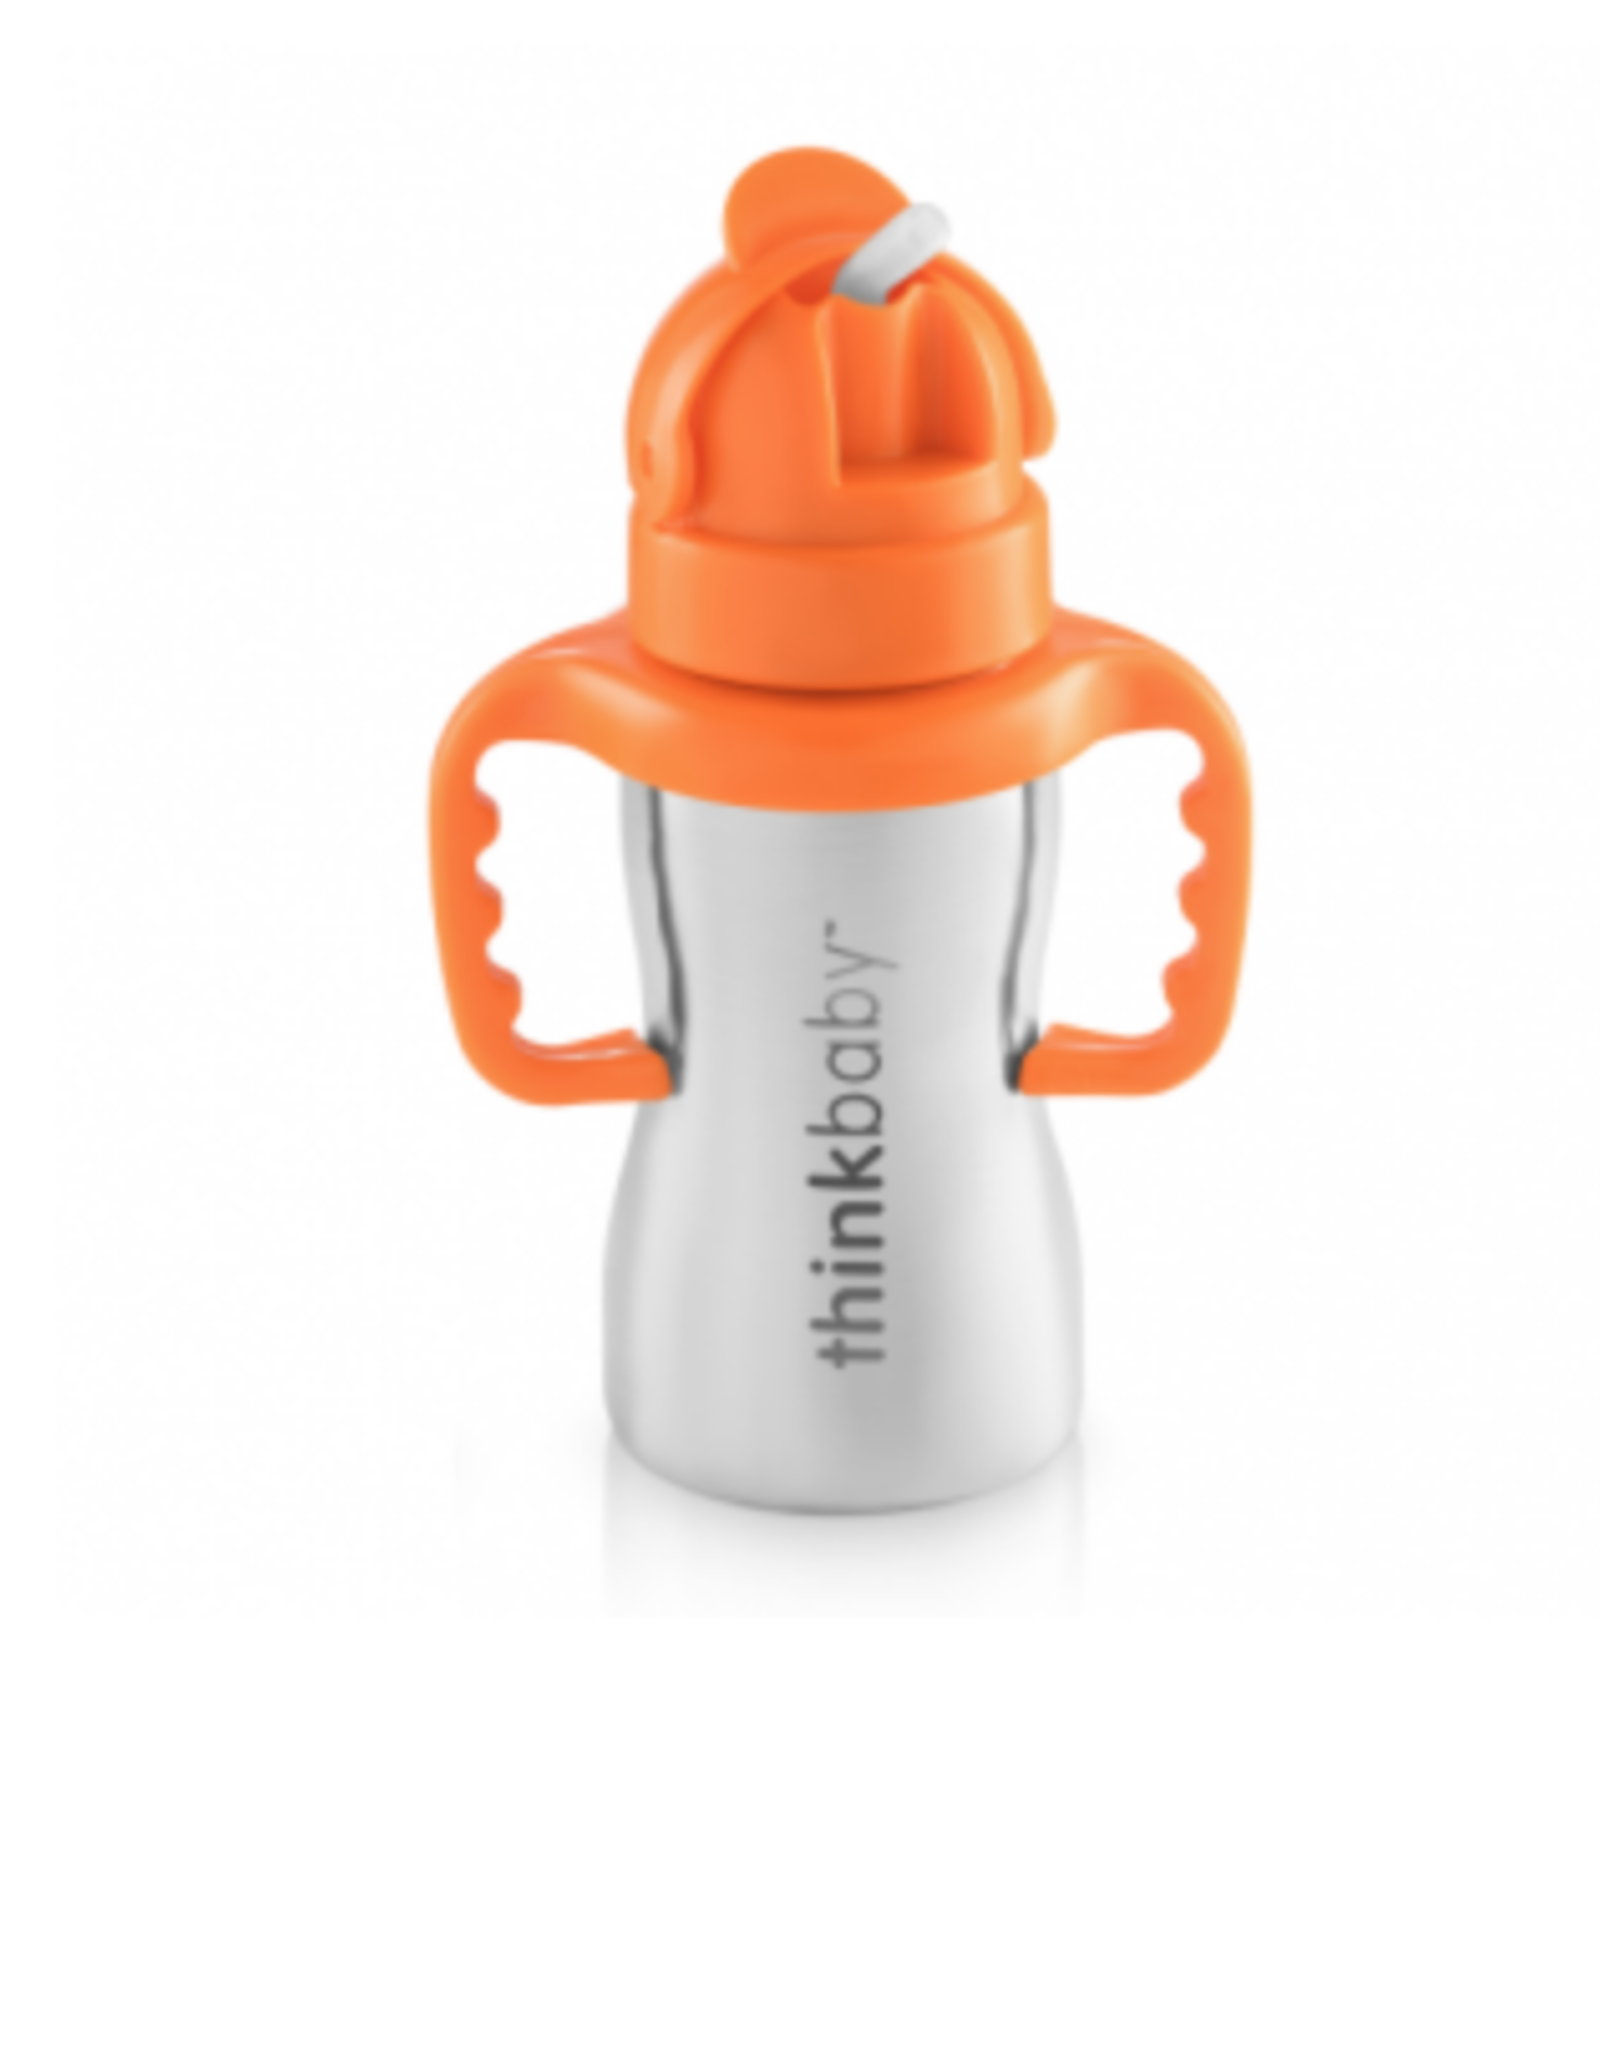 ThinkBaby Think Baby Stainless Steel Straw Bottle